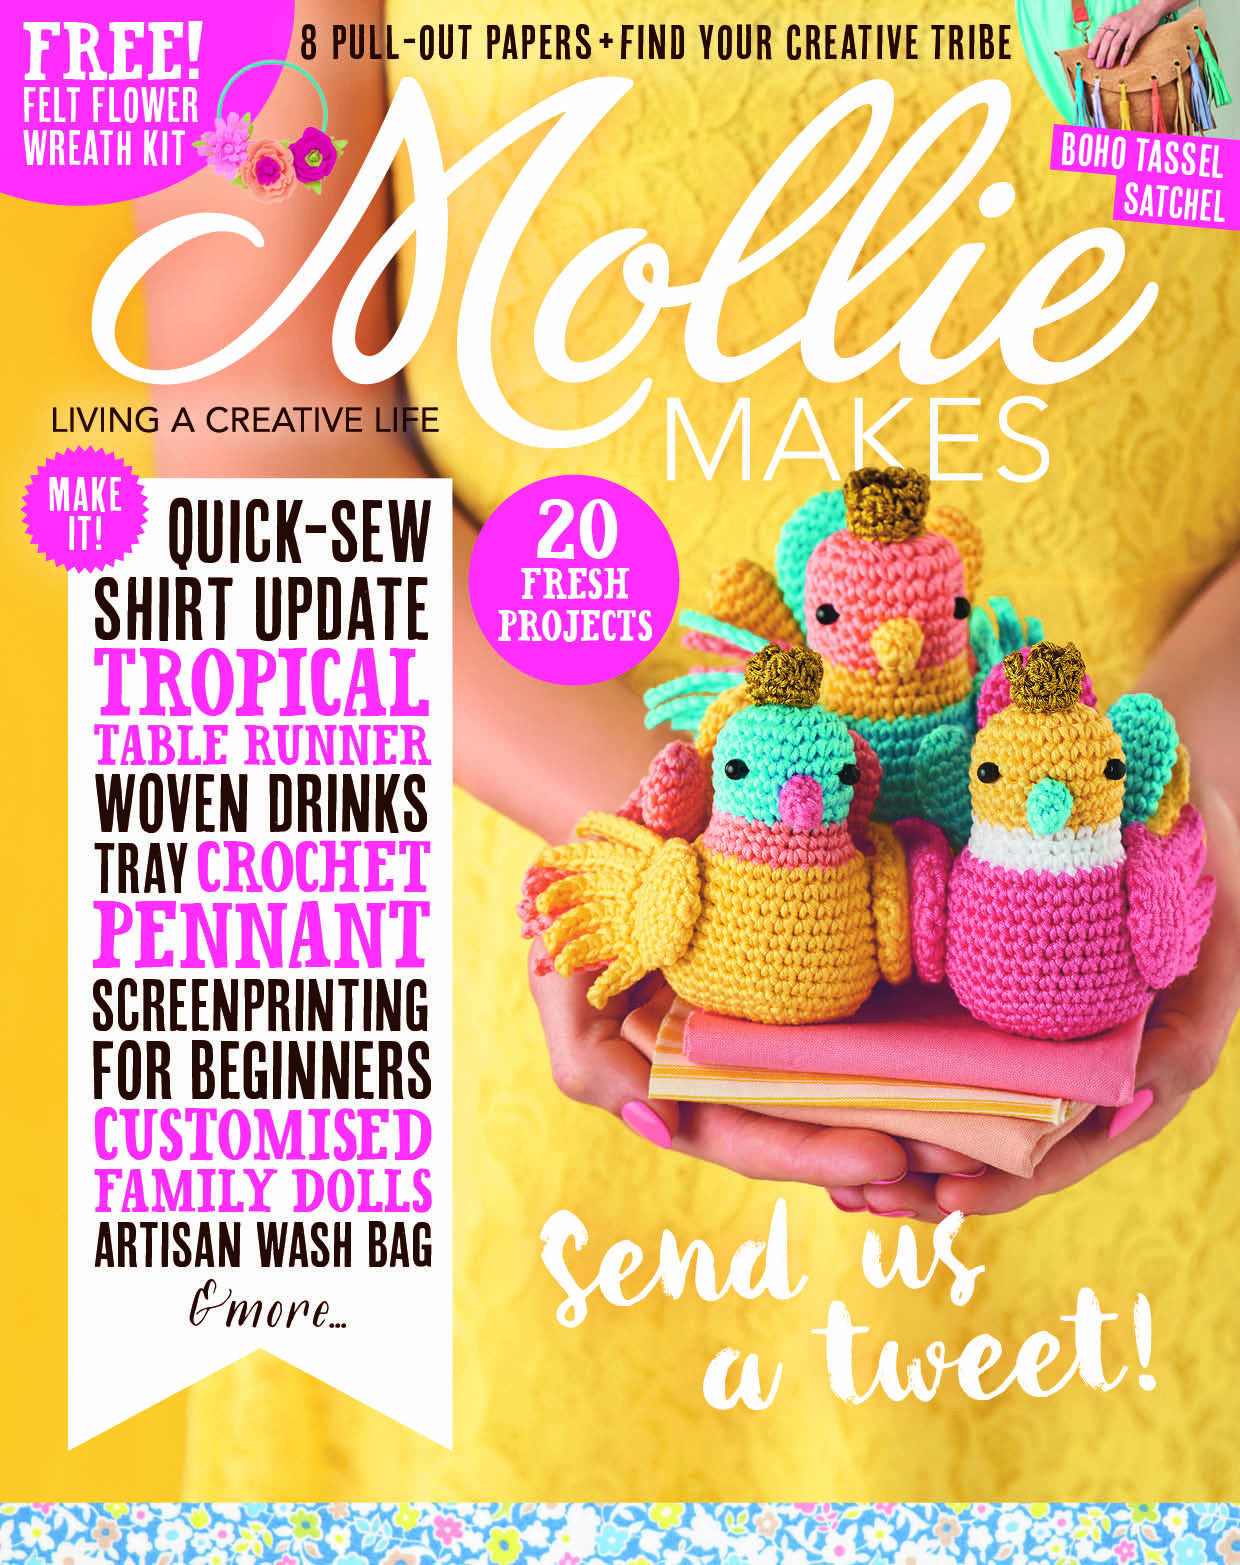 Featured in Mollie Makes magazine